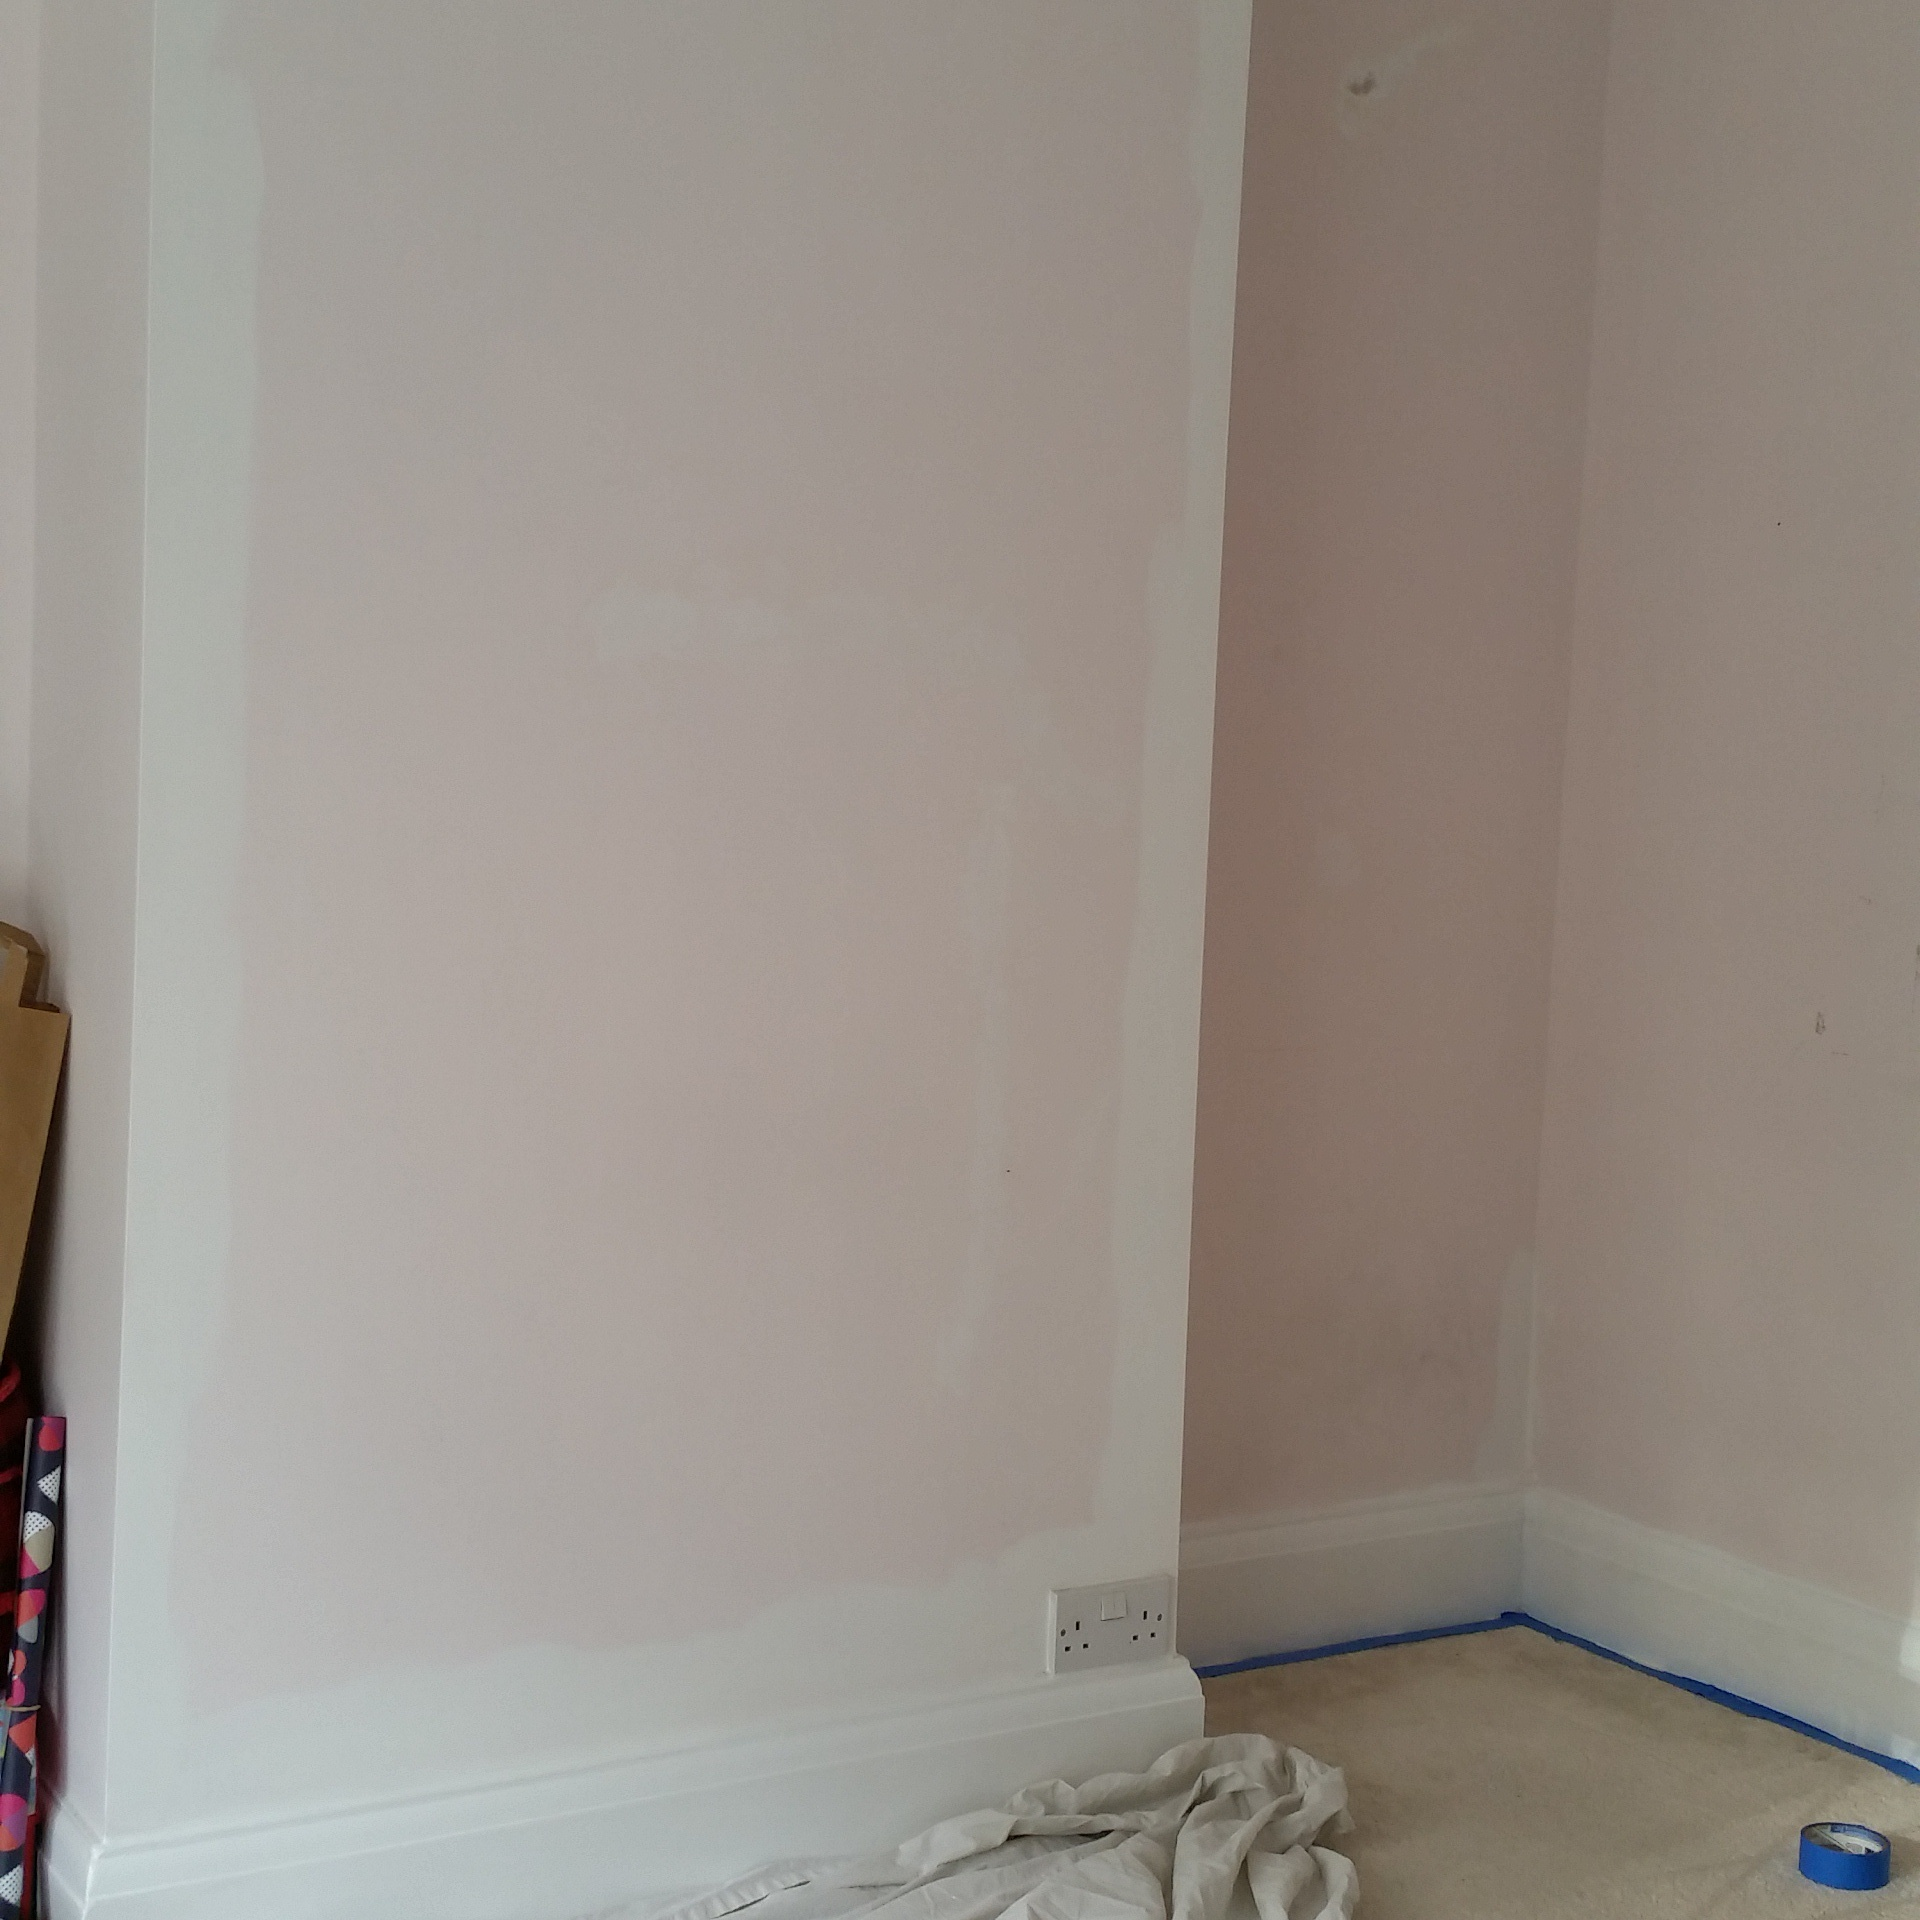 100 do you paint ceiling or walls first wagner 0530004 for What do you paint first